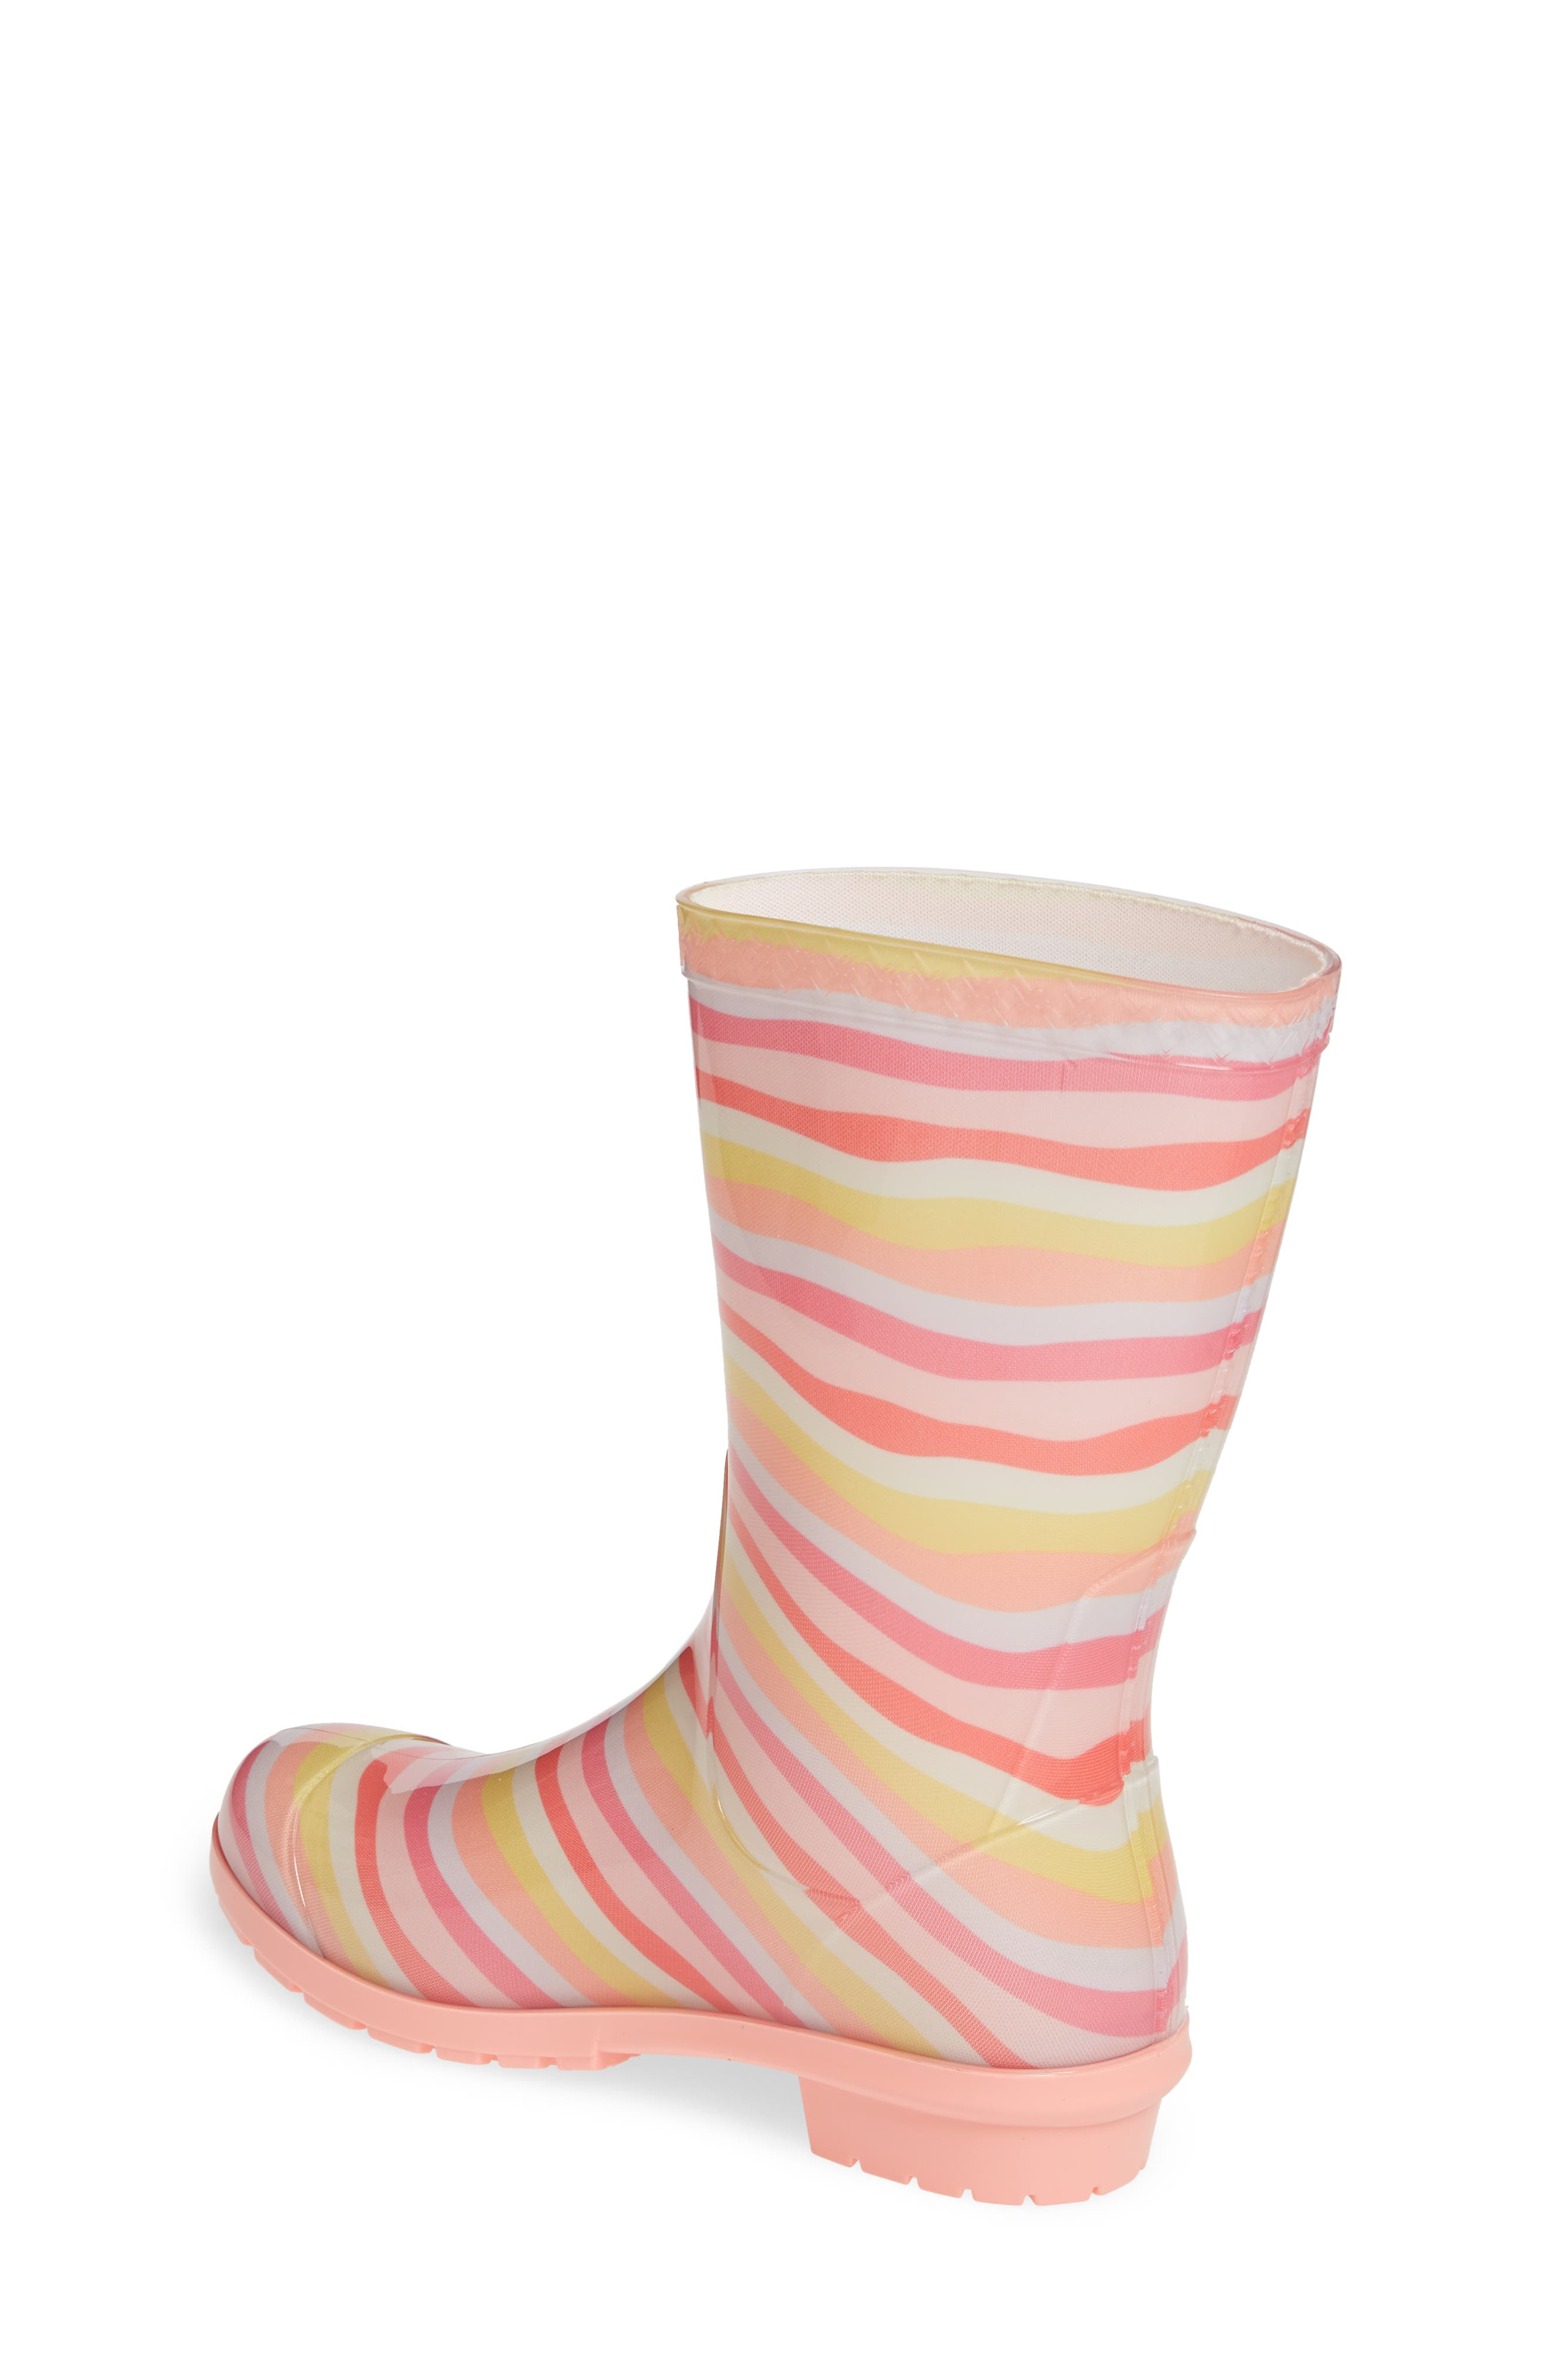 UGG<SUP>®</SUP>, Raana Waterproof Rain Boot, Alternate thumbnail 2, color, RAINBOW